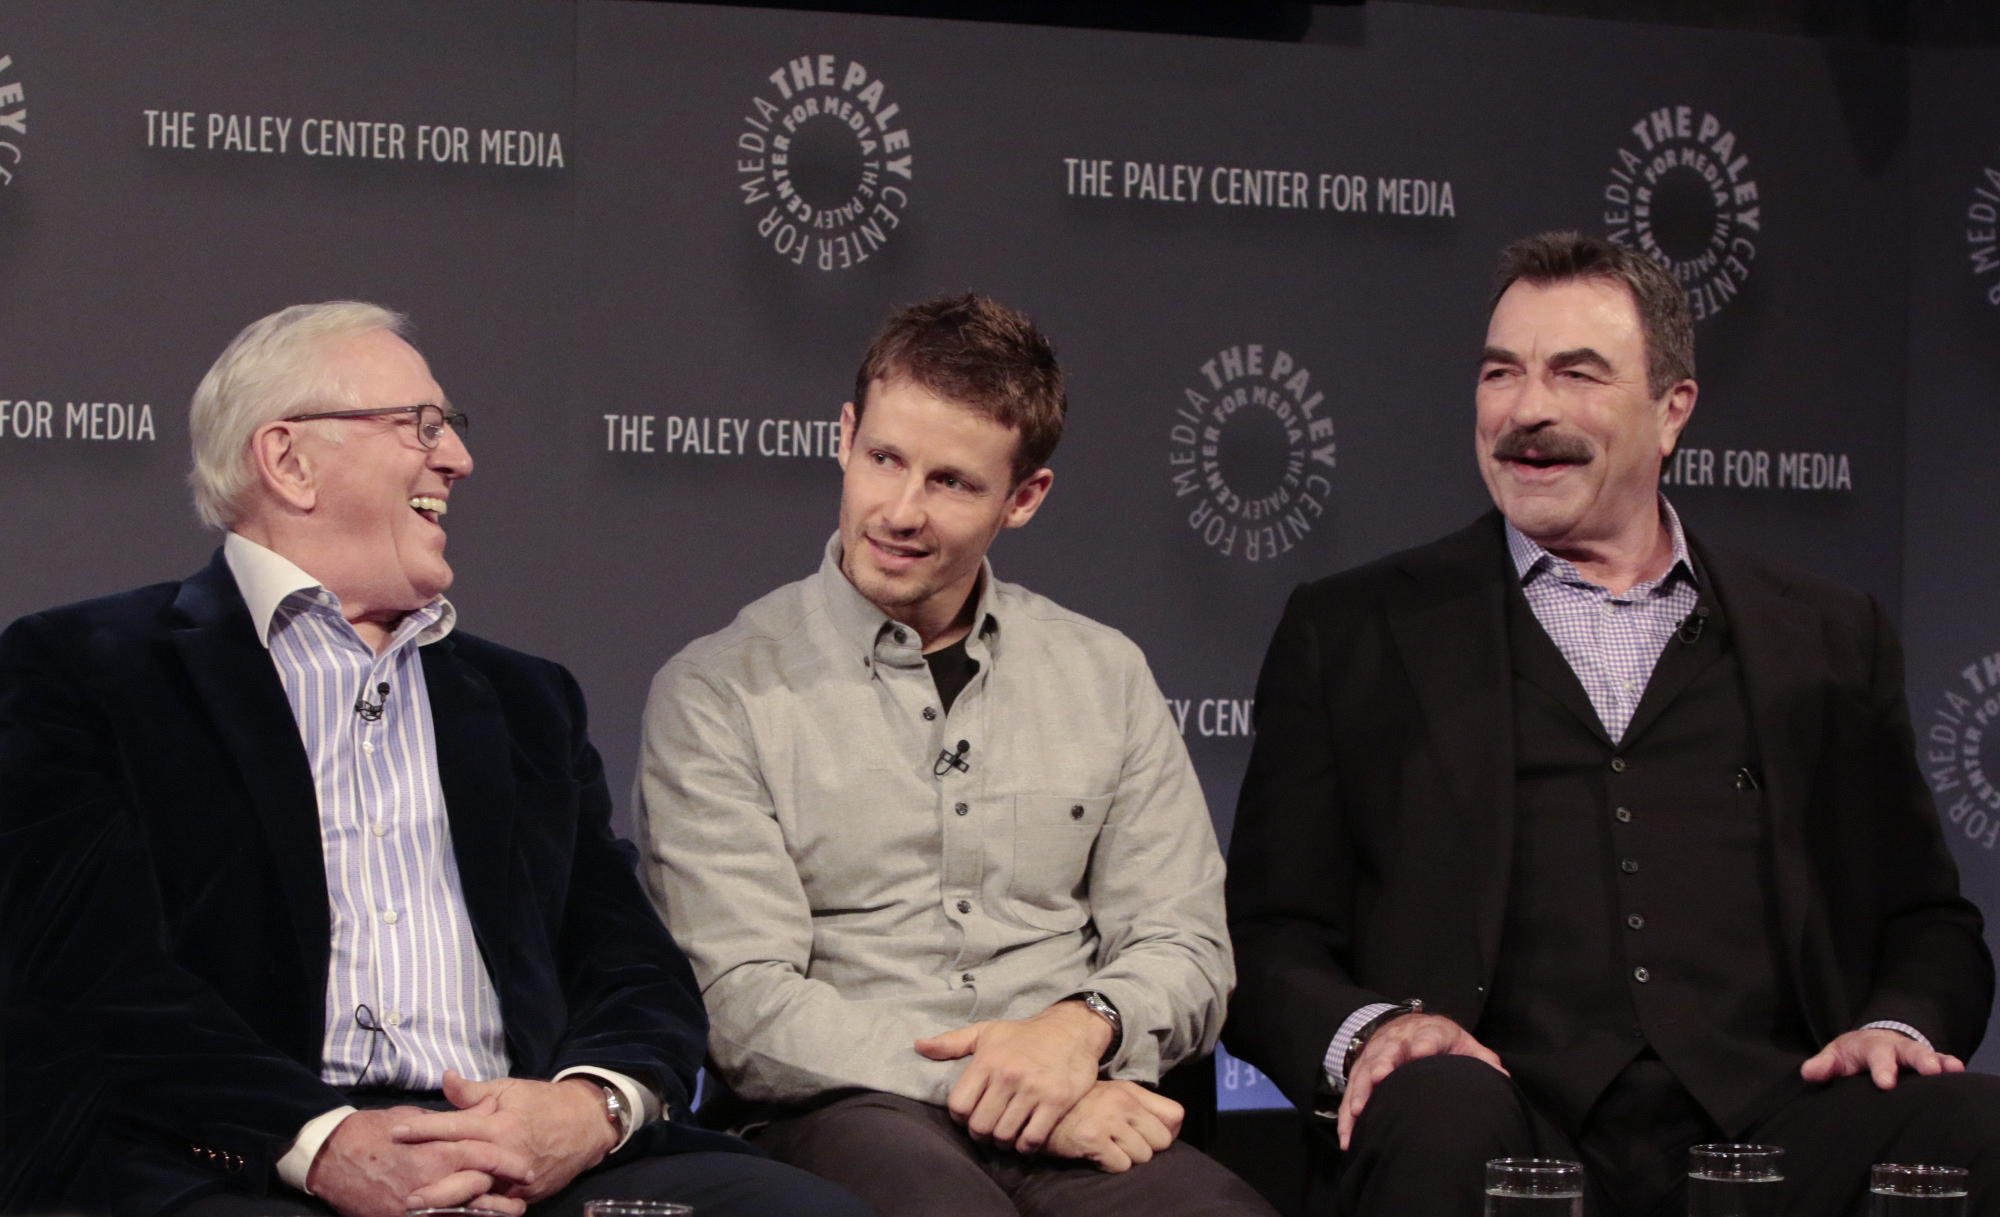 5. The cast knows how to have a good laugh together.